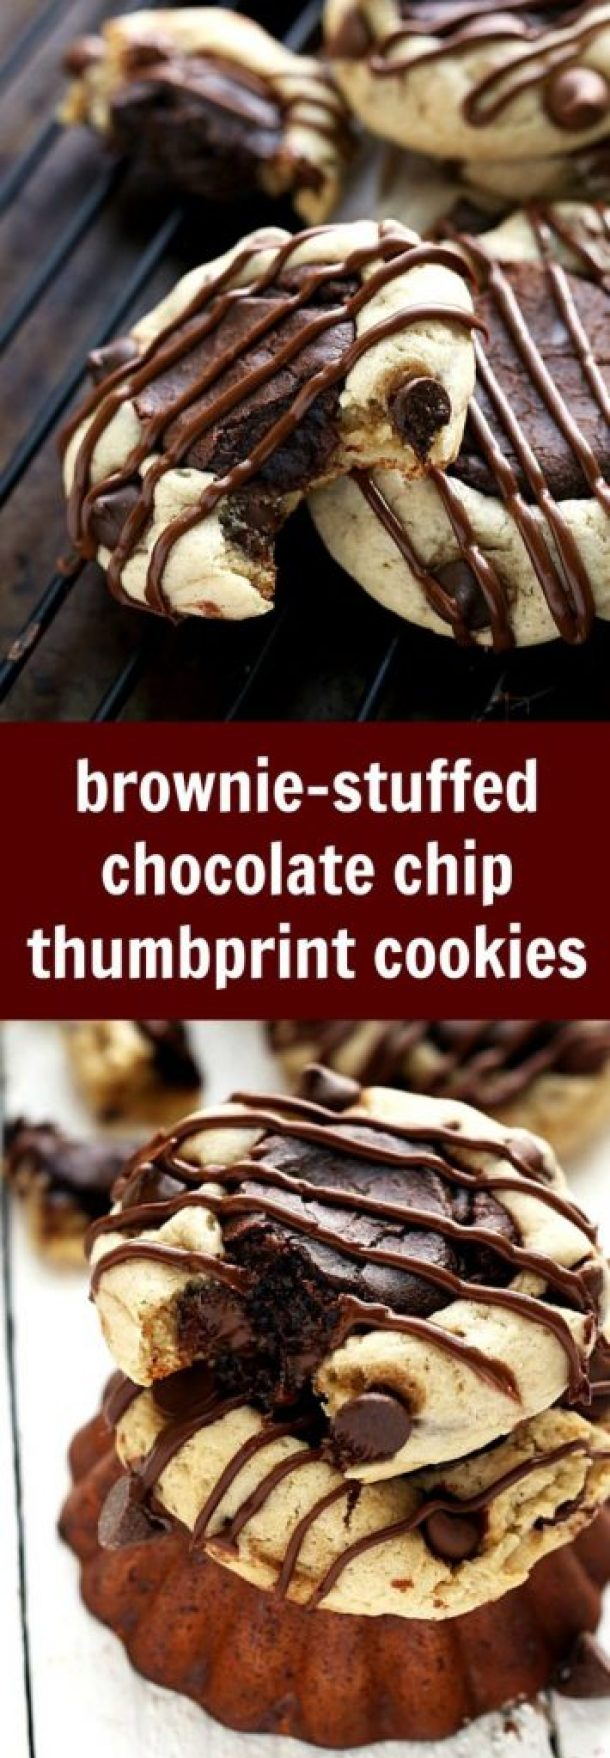 Brownie-Stuffed Chocolate Chip Thumbprint Cookies Recipe | Chelsea's Messy Apron